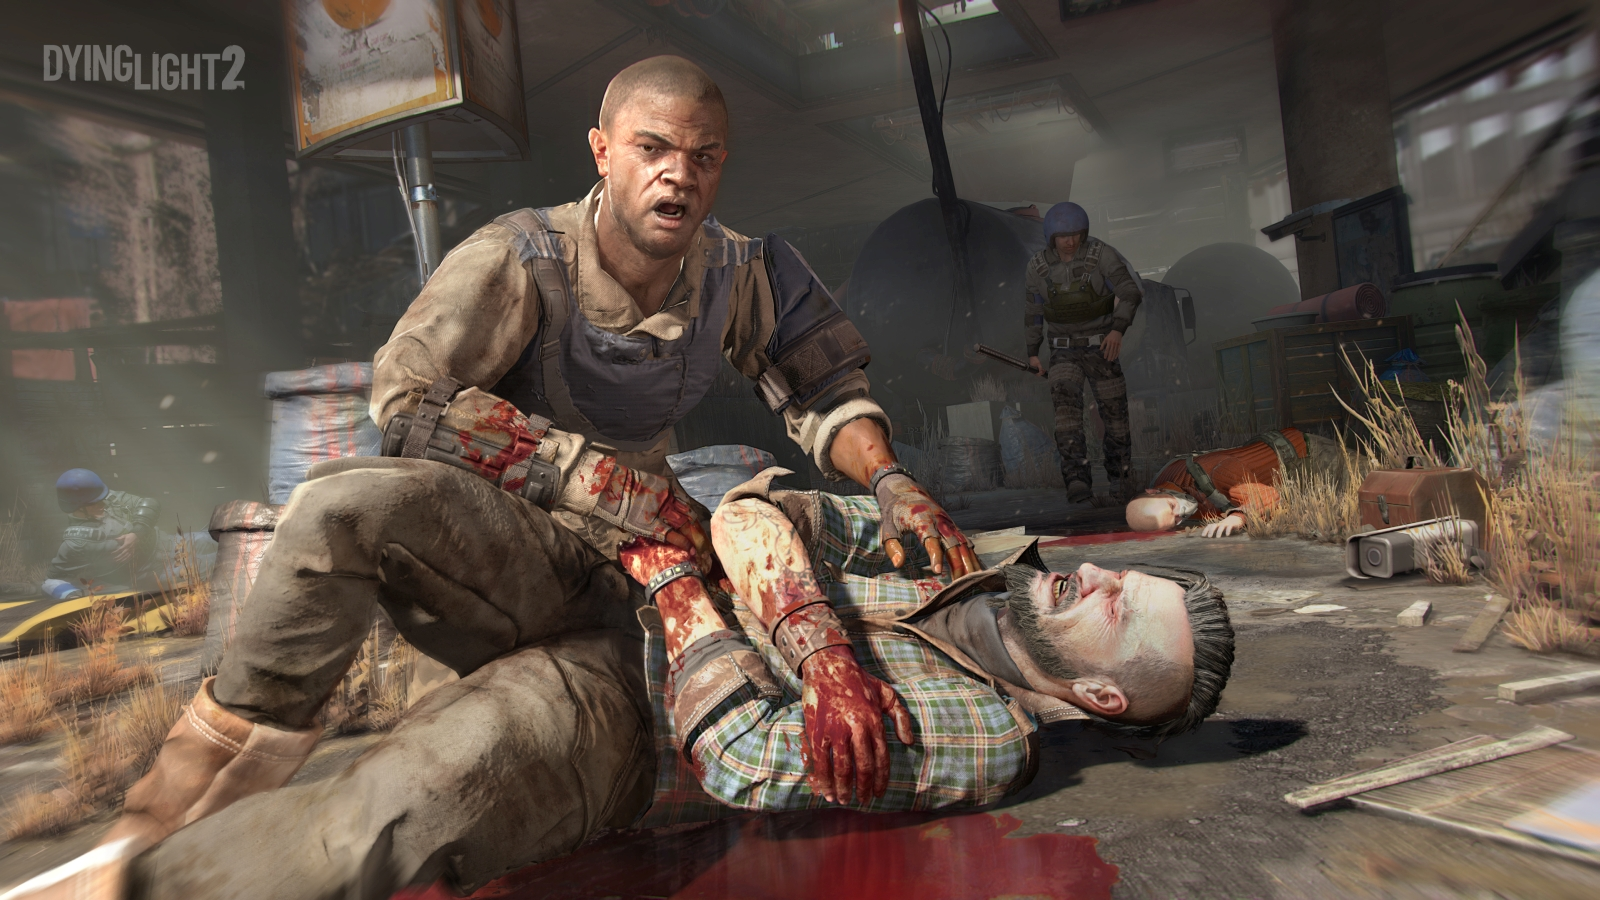 Dying Light 2 - 6